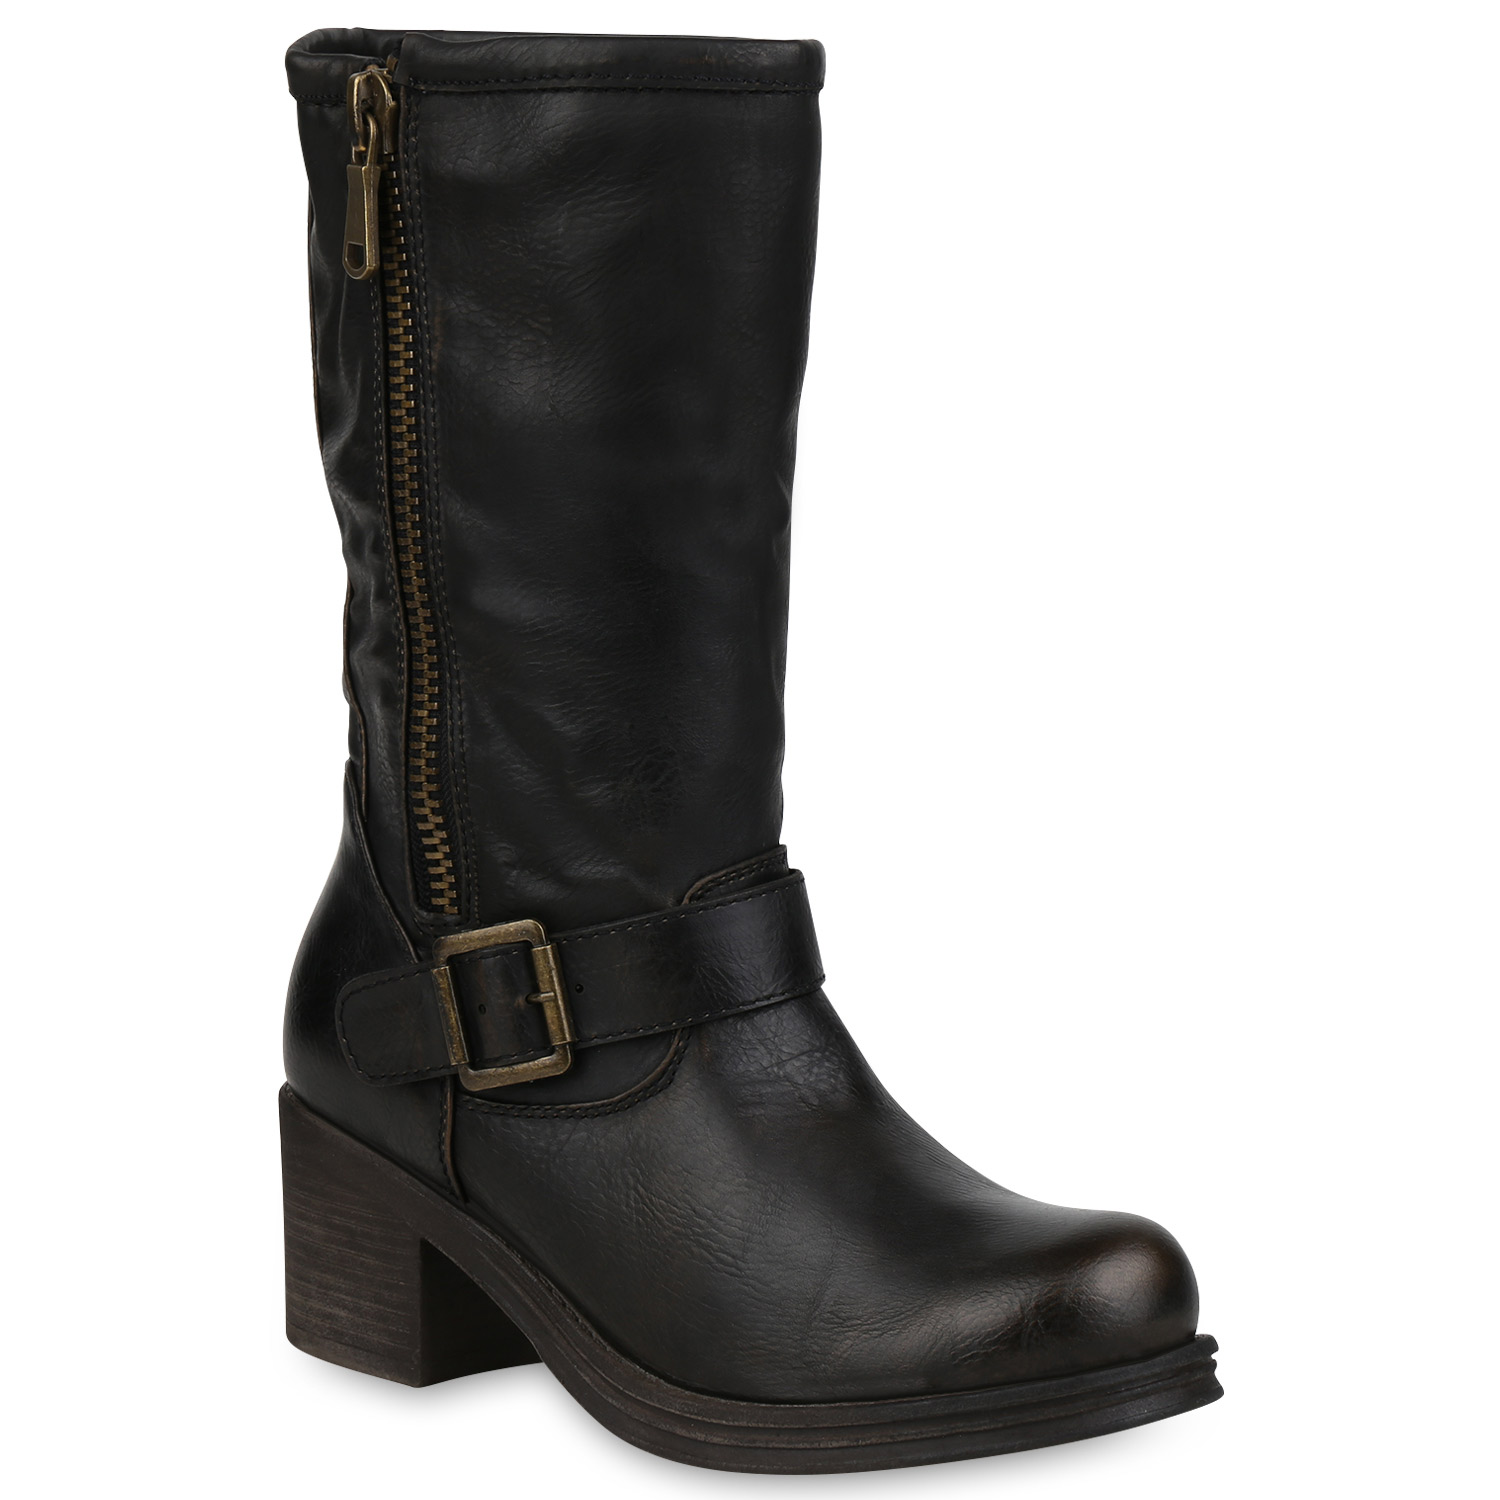 7fc8615c758ba7 Damen Stiefel in Gold (820207-155) - stiefelparadies.de